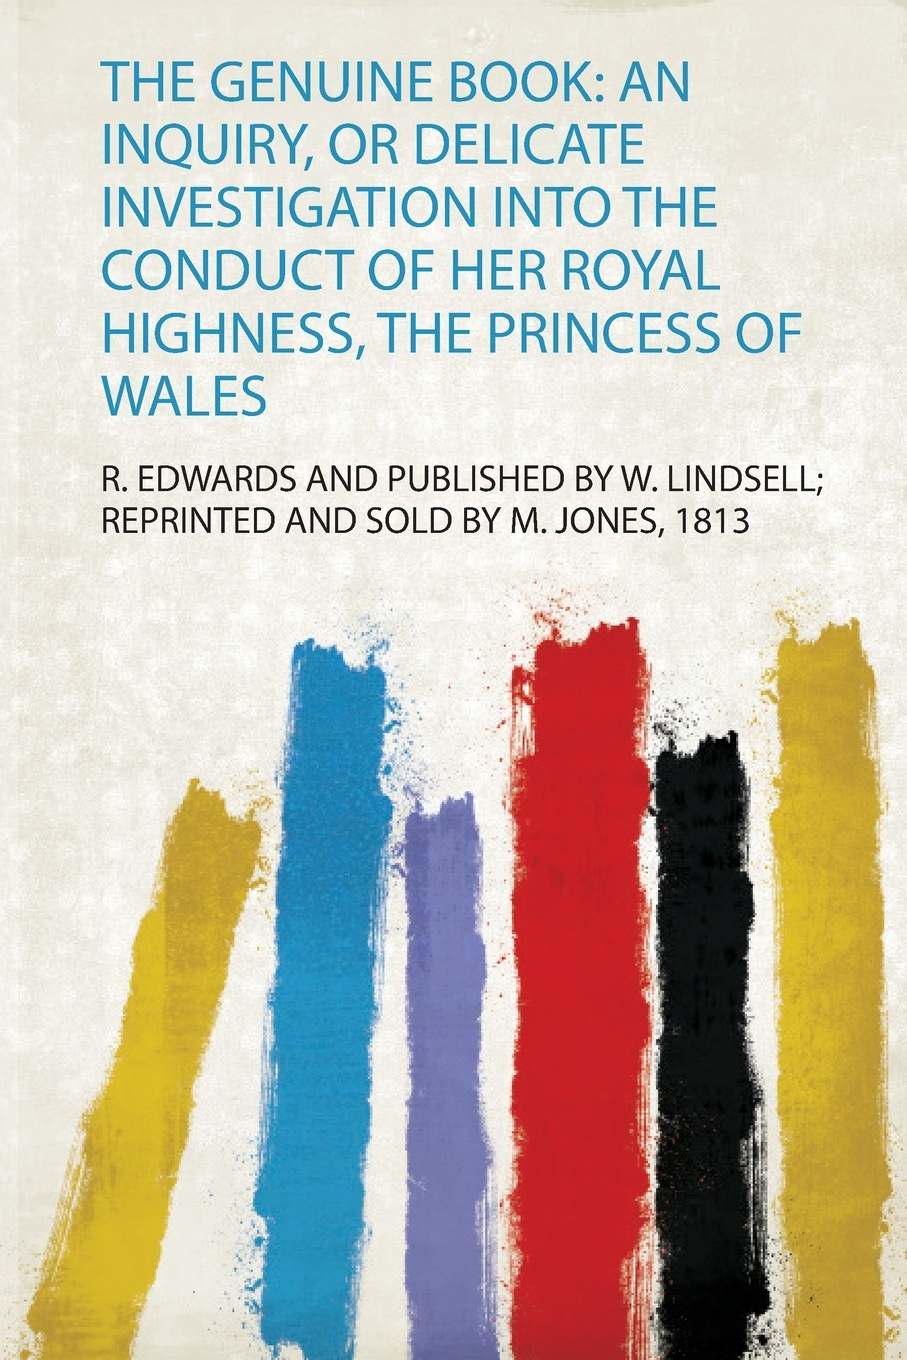 The Genuine Book. an Inquiry, or Delicate Investigation Into the Conduct of Her Royal Highness, the Princess of Wales